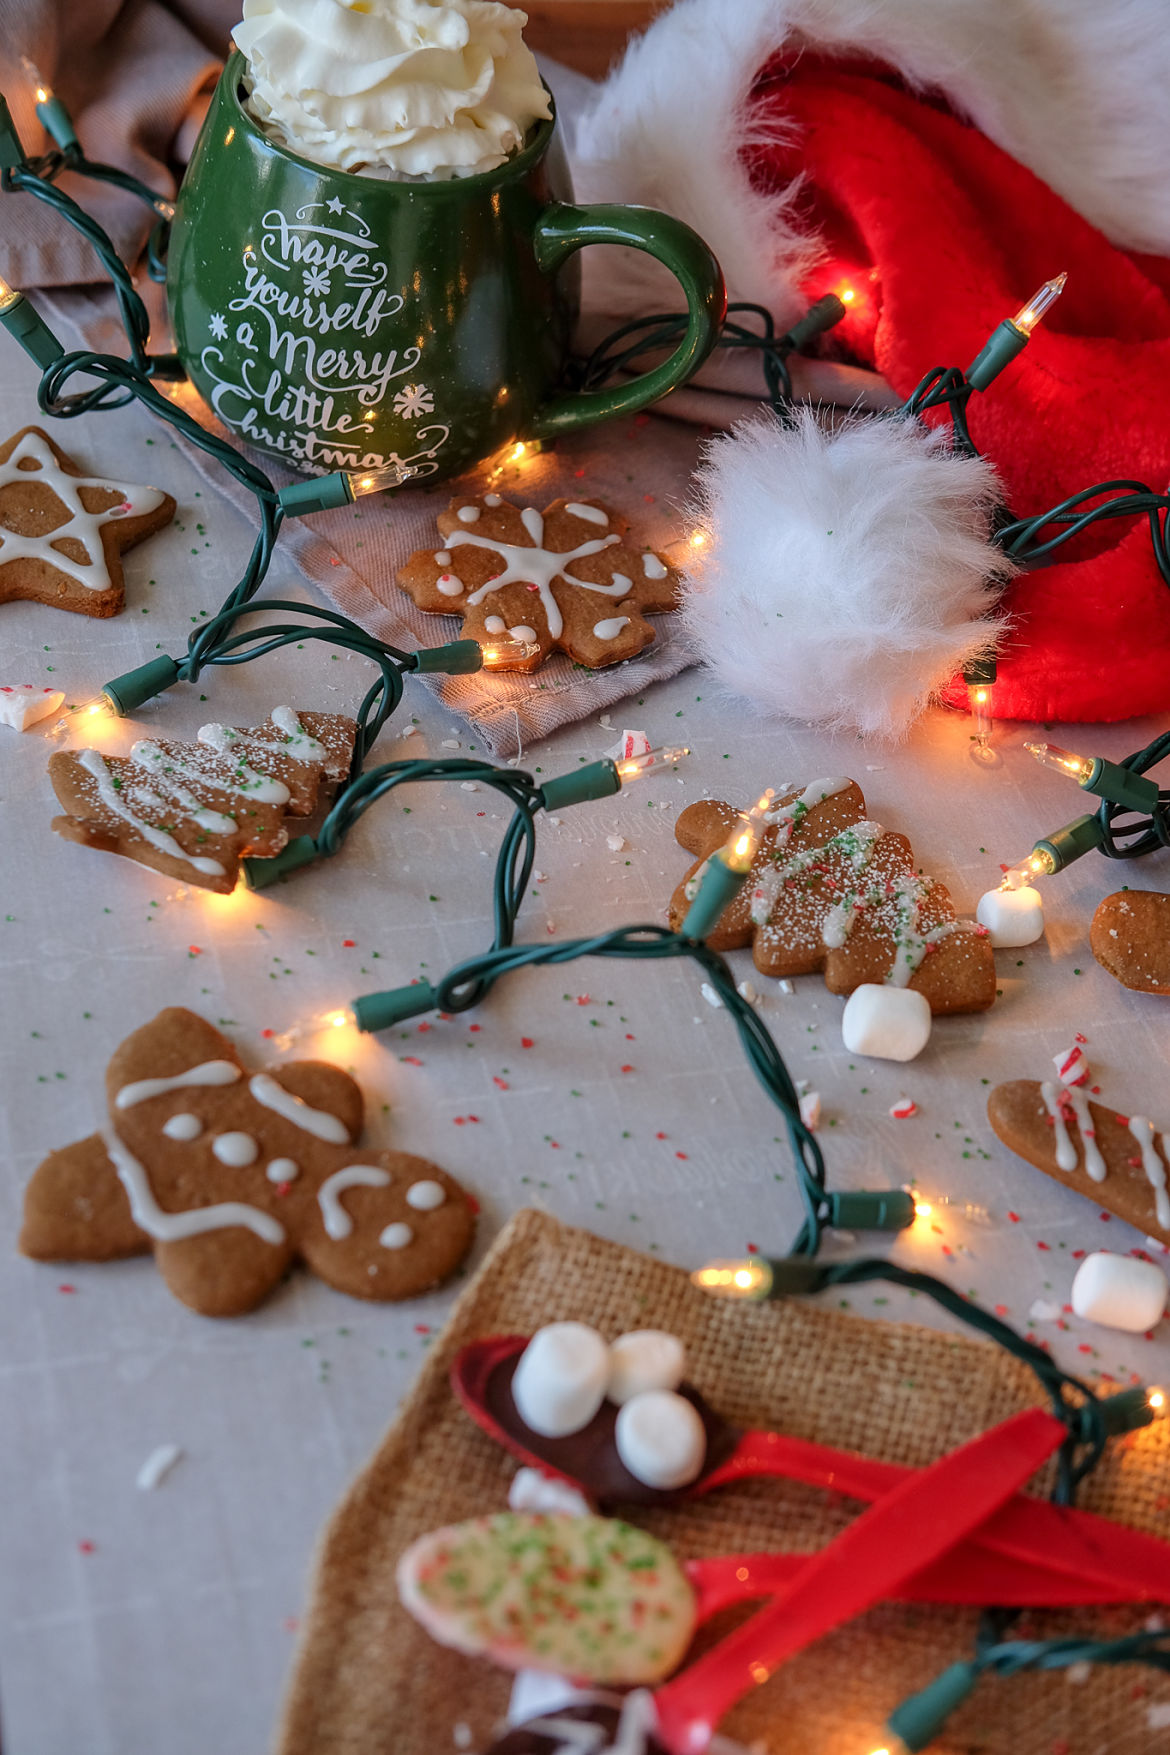 Gingerbread Cookies - They Taste Great in the Nude